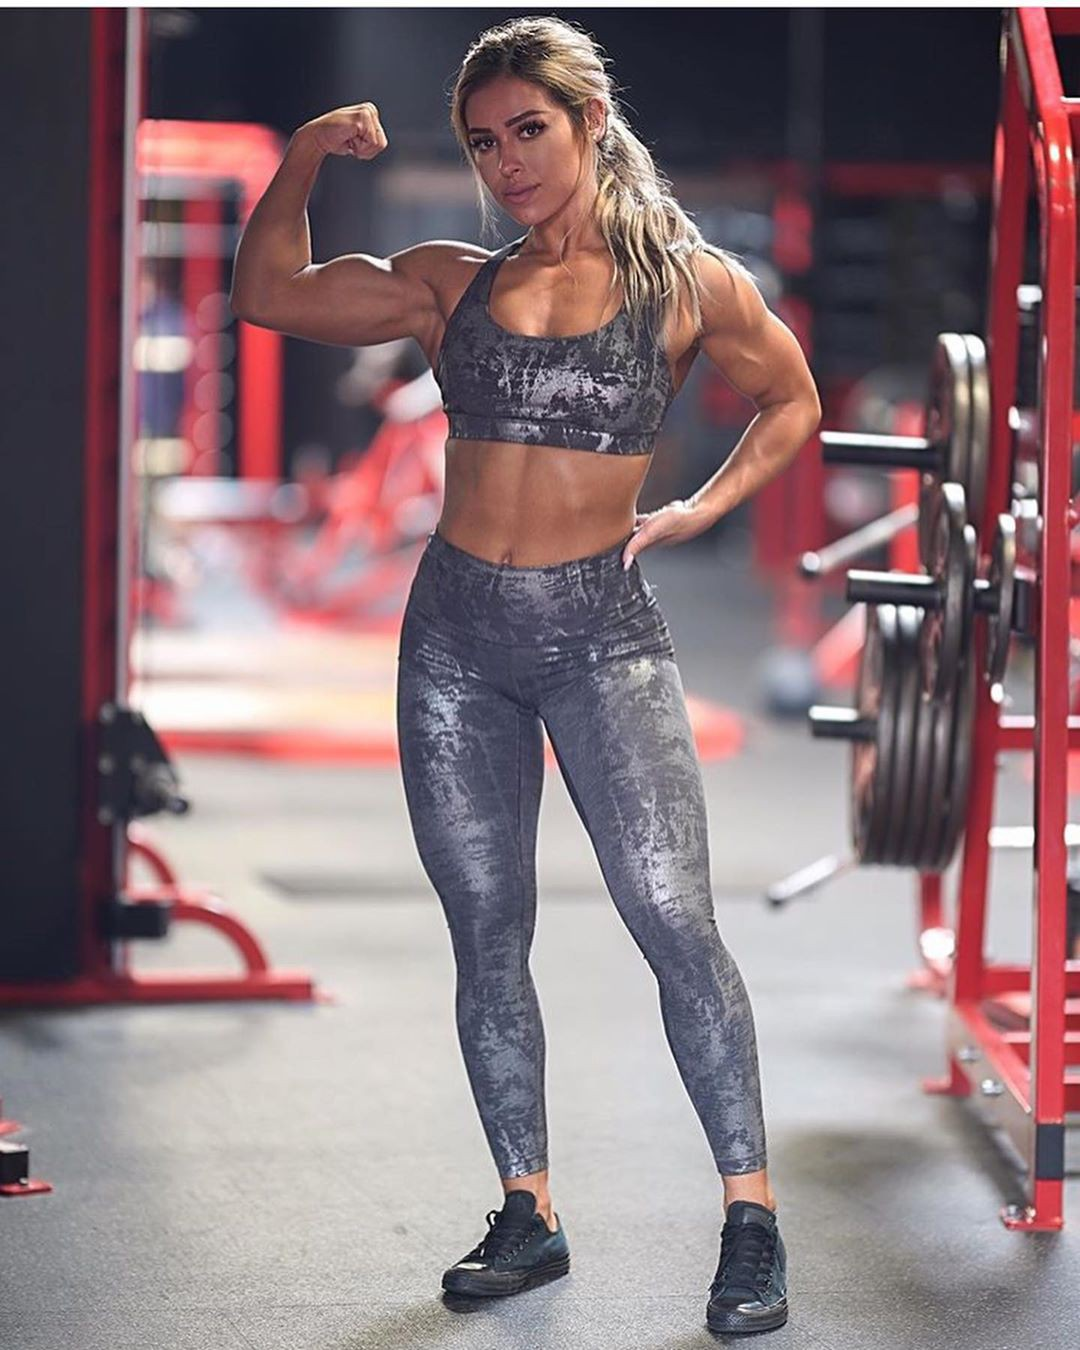 Latest and trendy cassandra martin, INSTA FITNESS MODELS